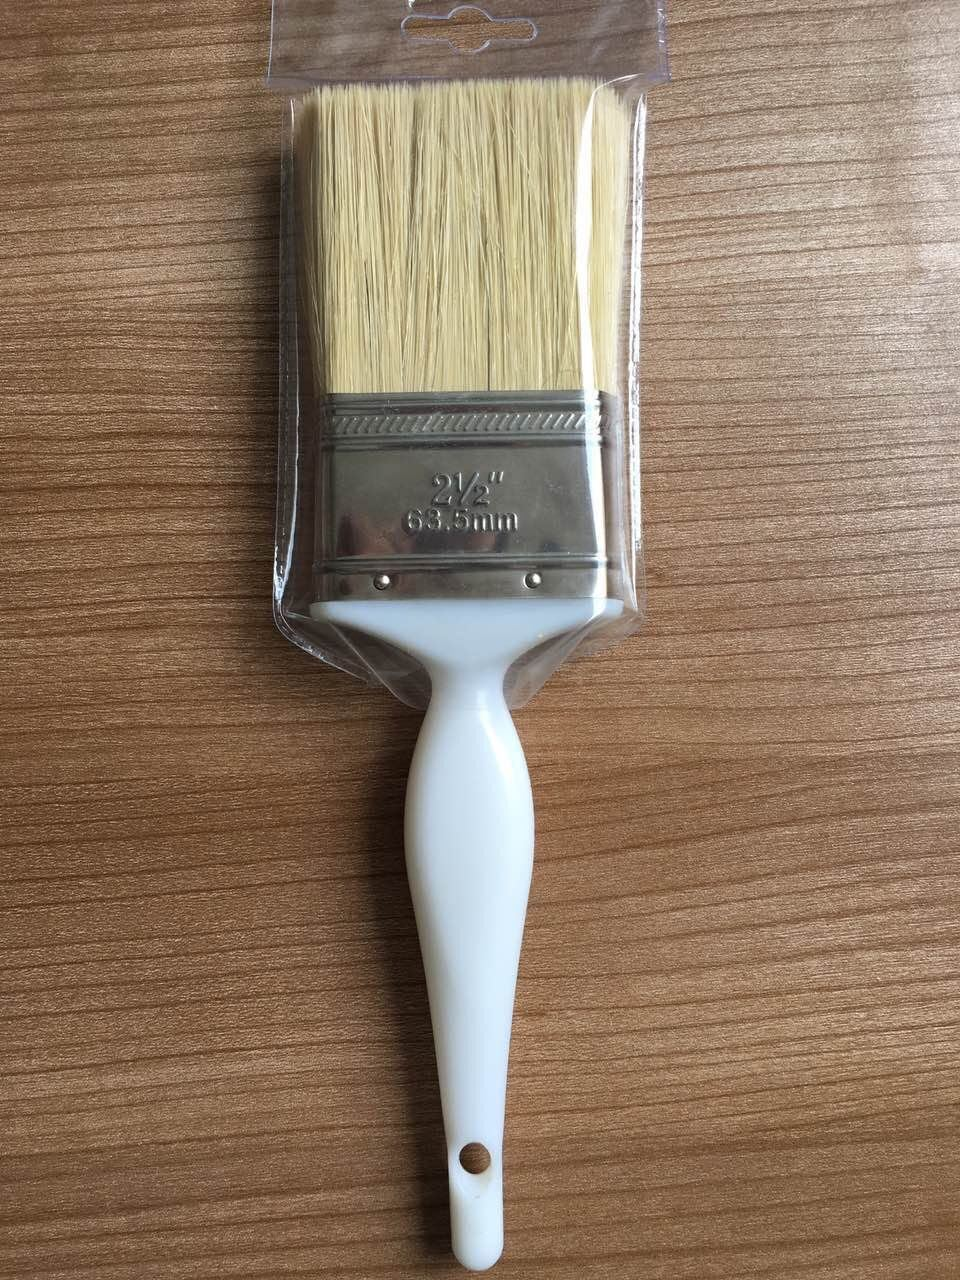 999 Paint Brush with Plastic Handle for Iran Market